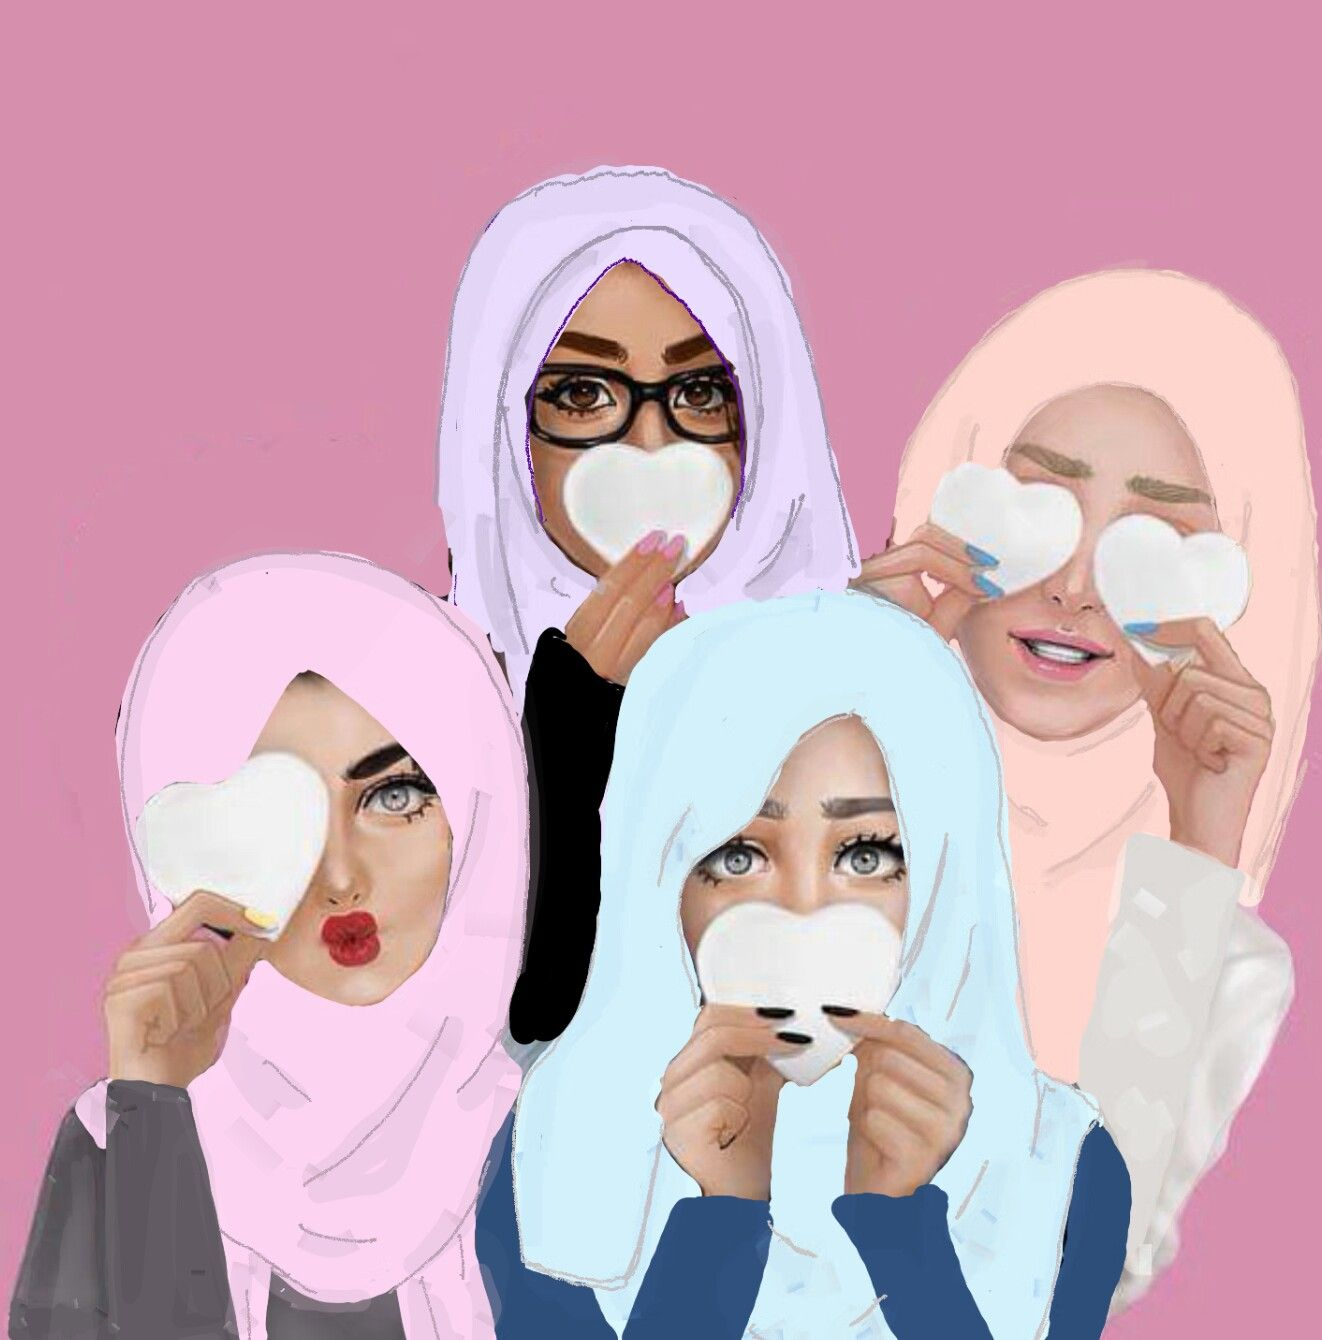 Hijab girls Artworks Pinterest Girls, Illustrations